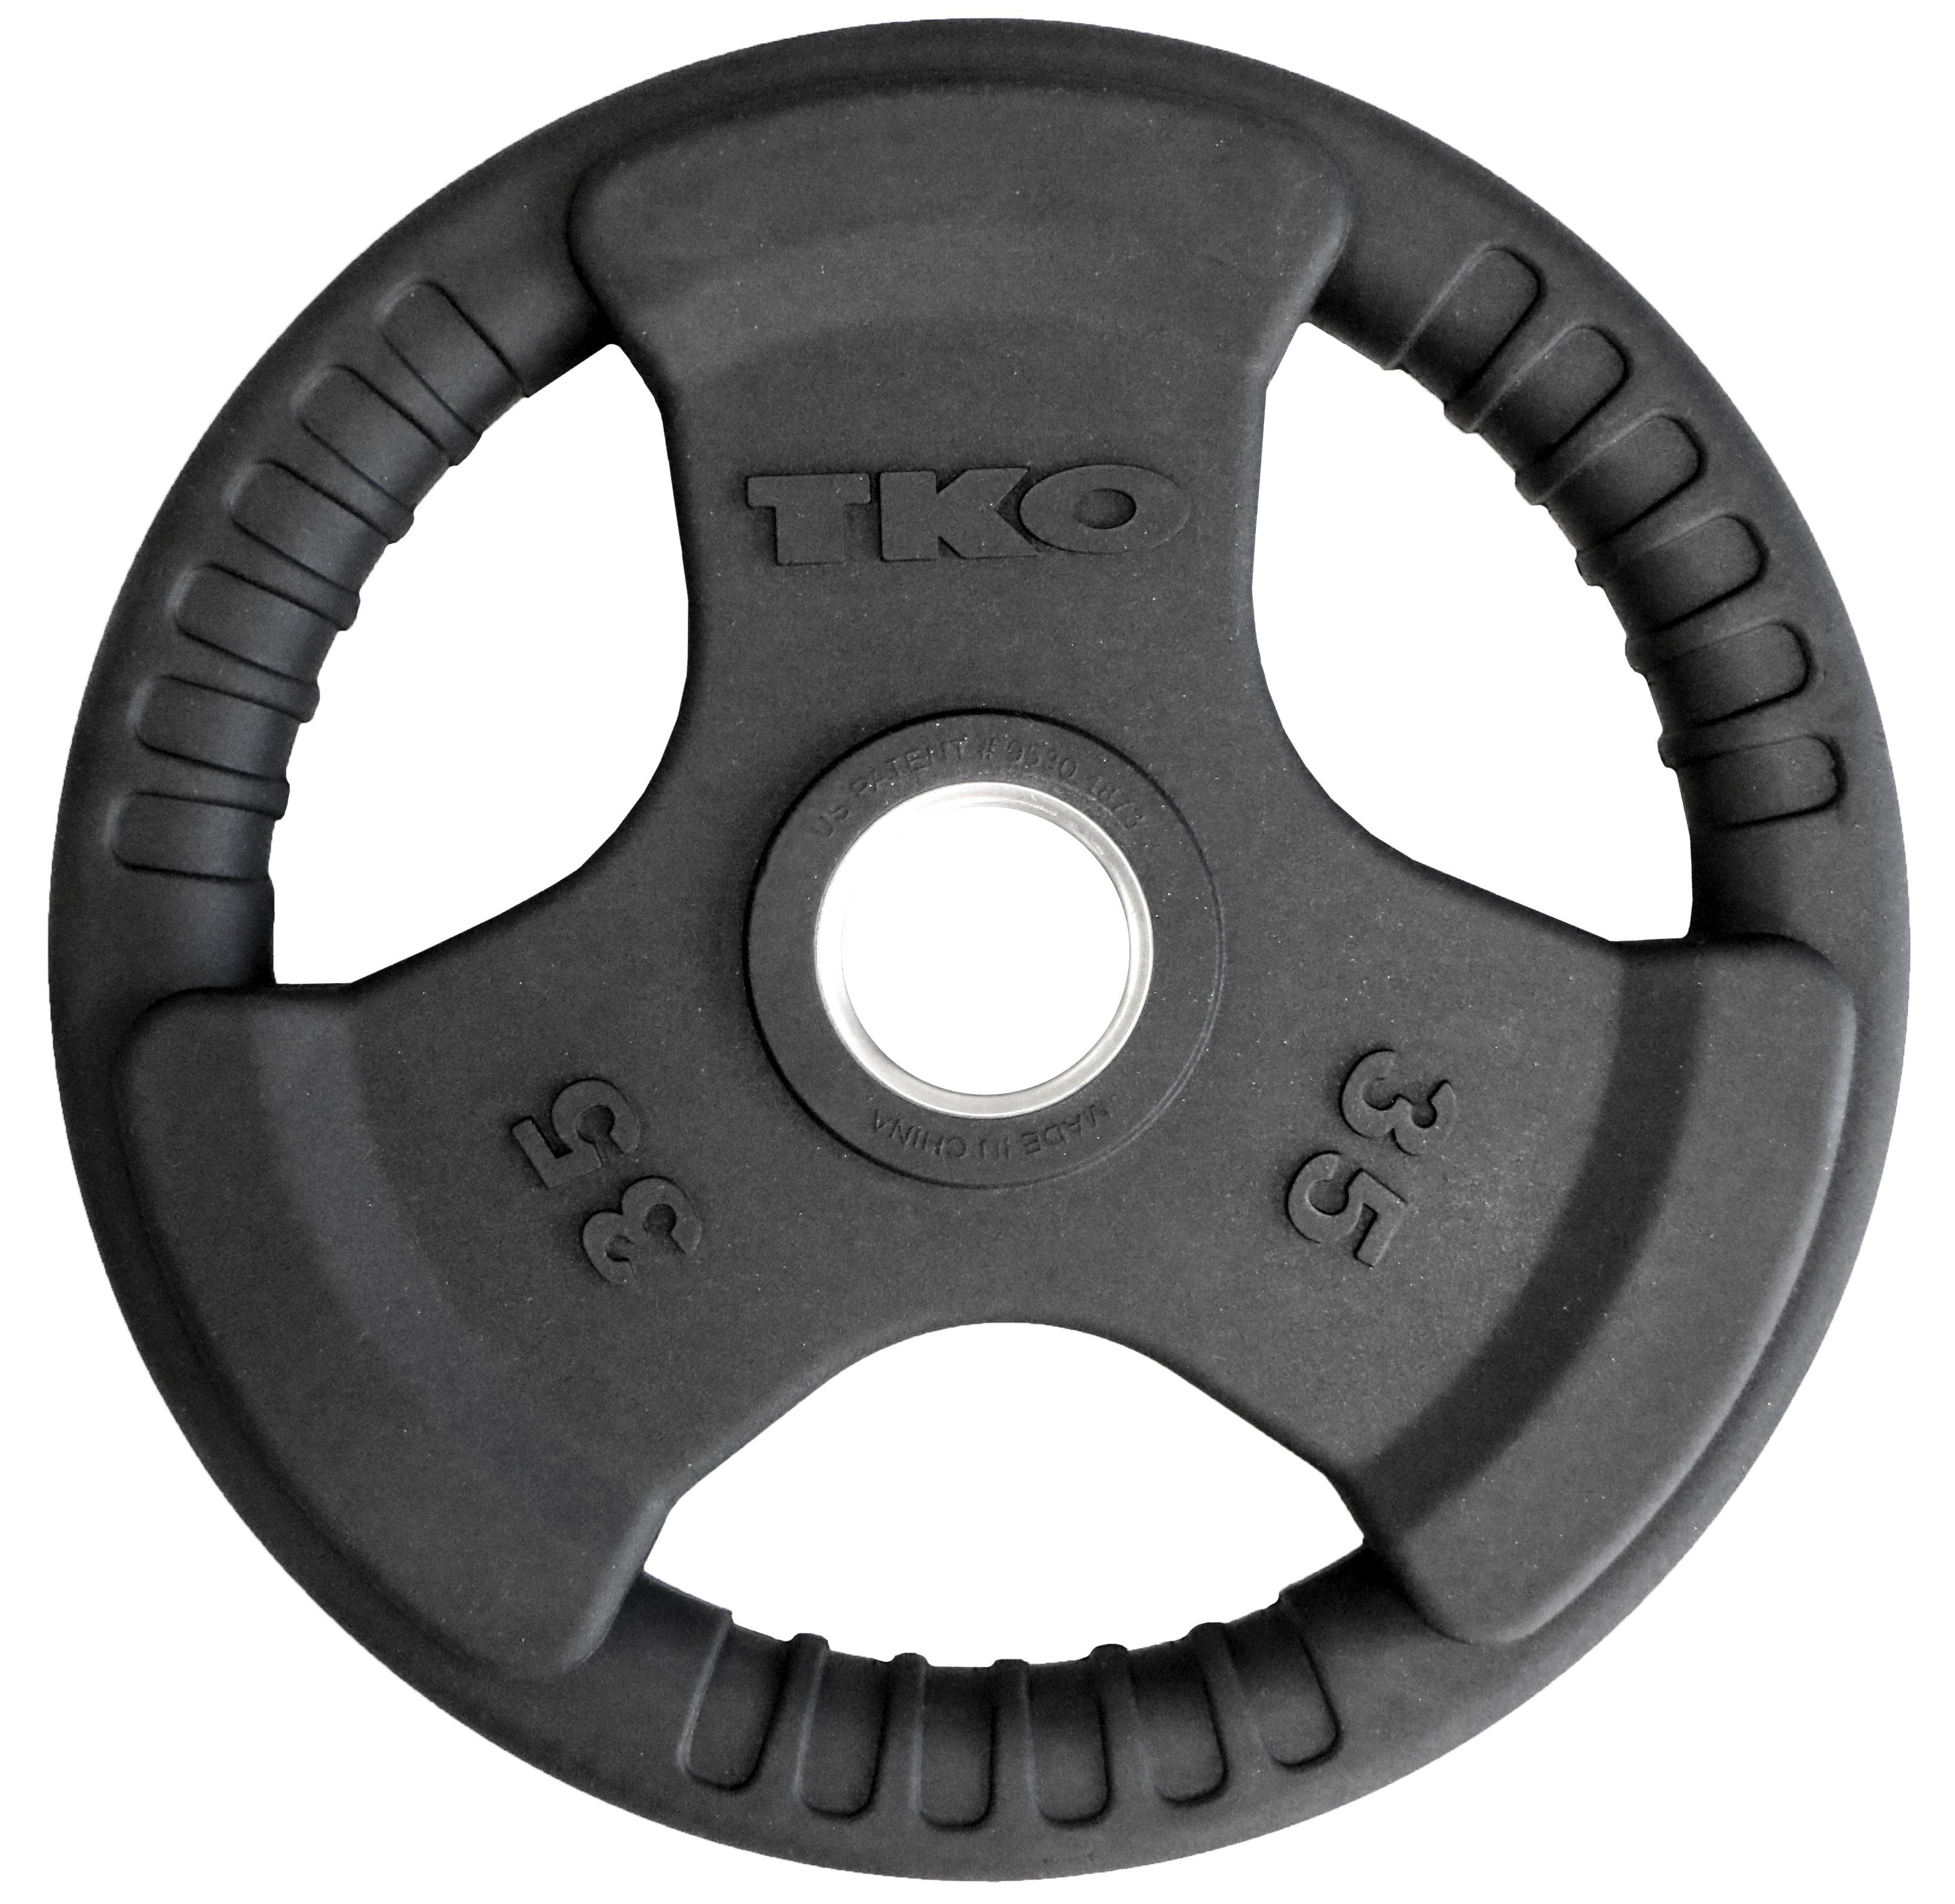 TKO OLYMPIC RUBBER TRI GRIP PLATES (With images)